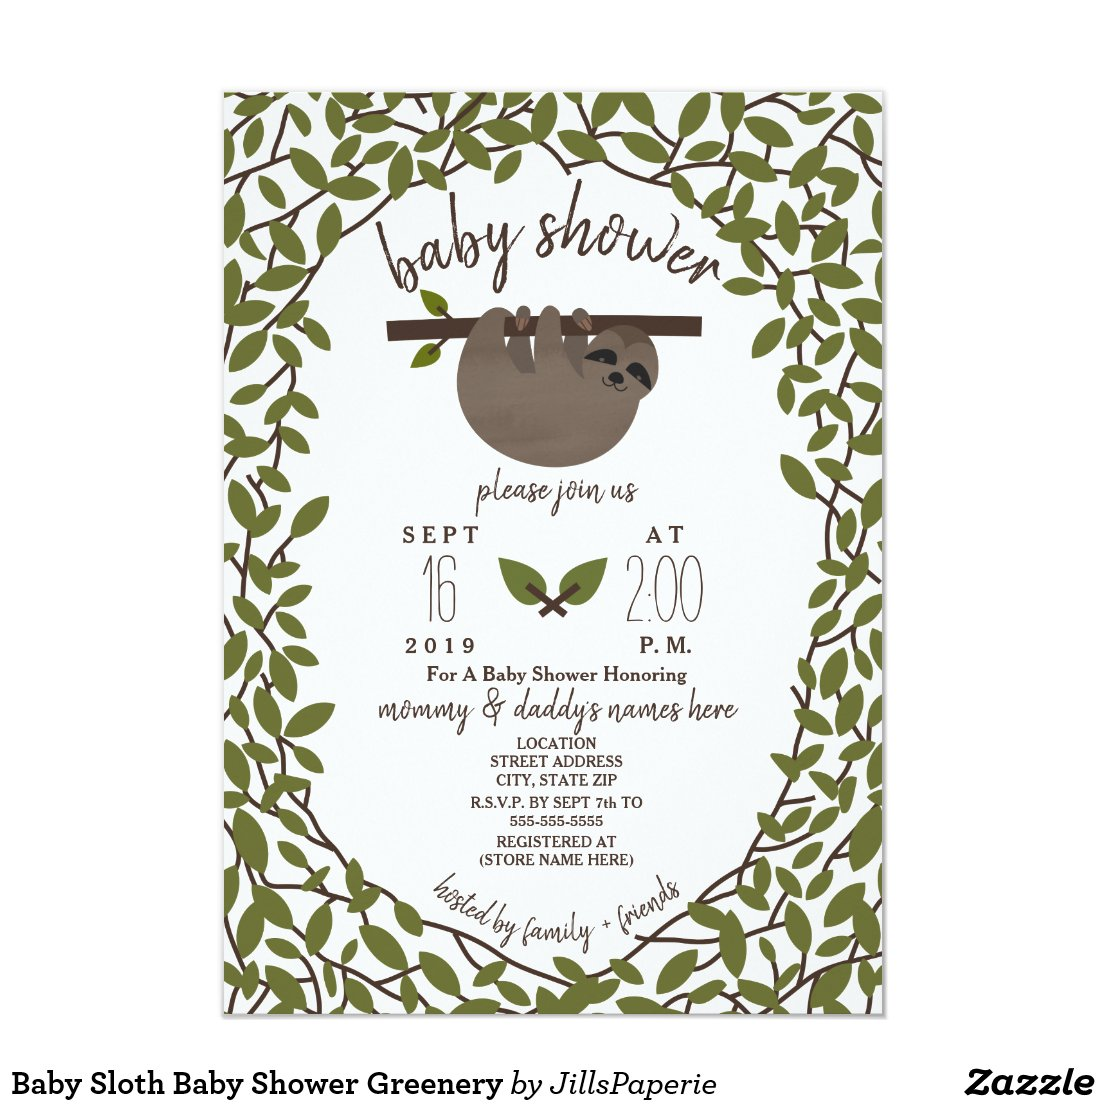 Baby Sloth Baby Shower Greenery Card